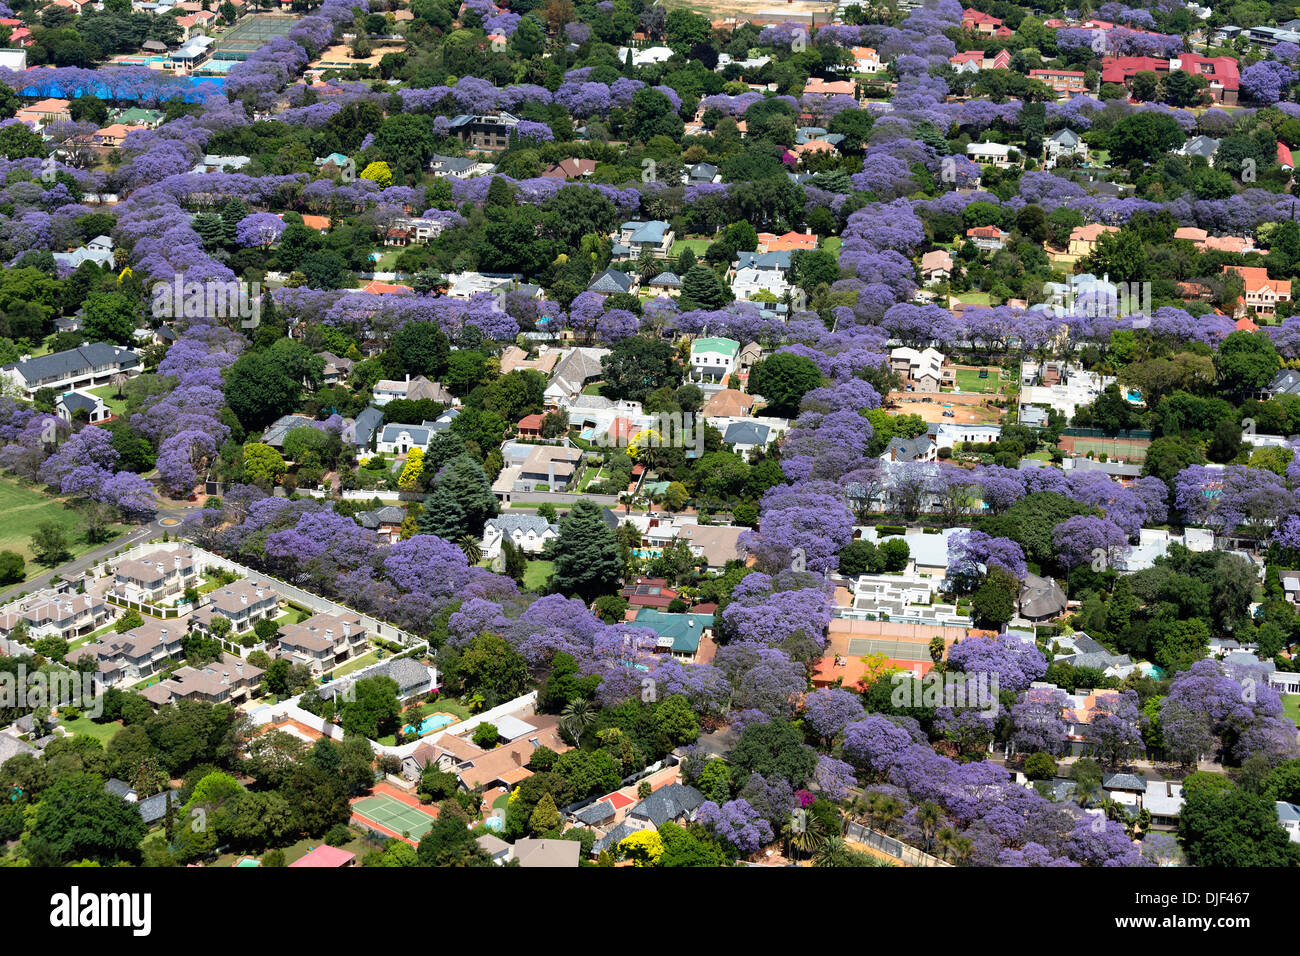 Aerial view of Jacaranda trees in blossom,Johannesburg suburbs, making it one of the greenest cities in the world.South - Stock Image